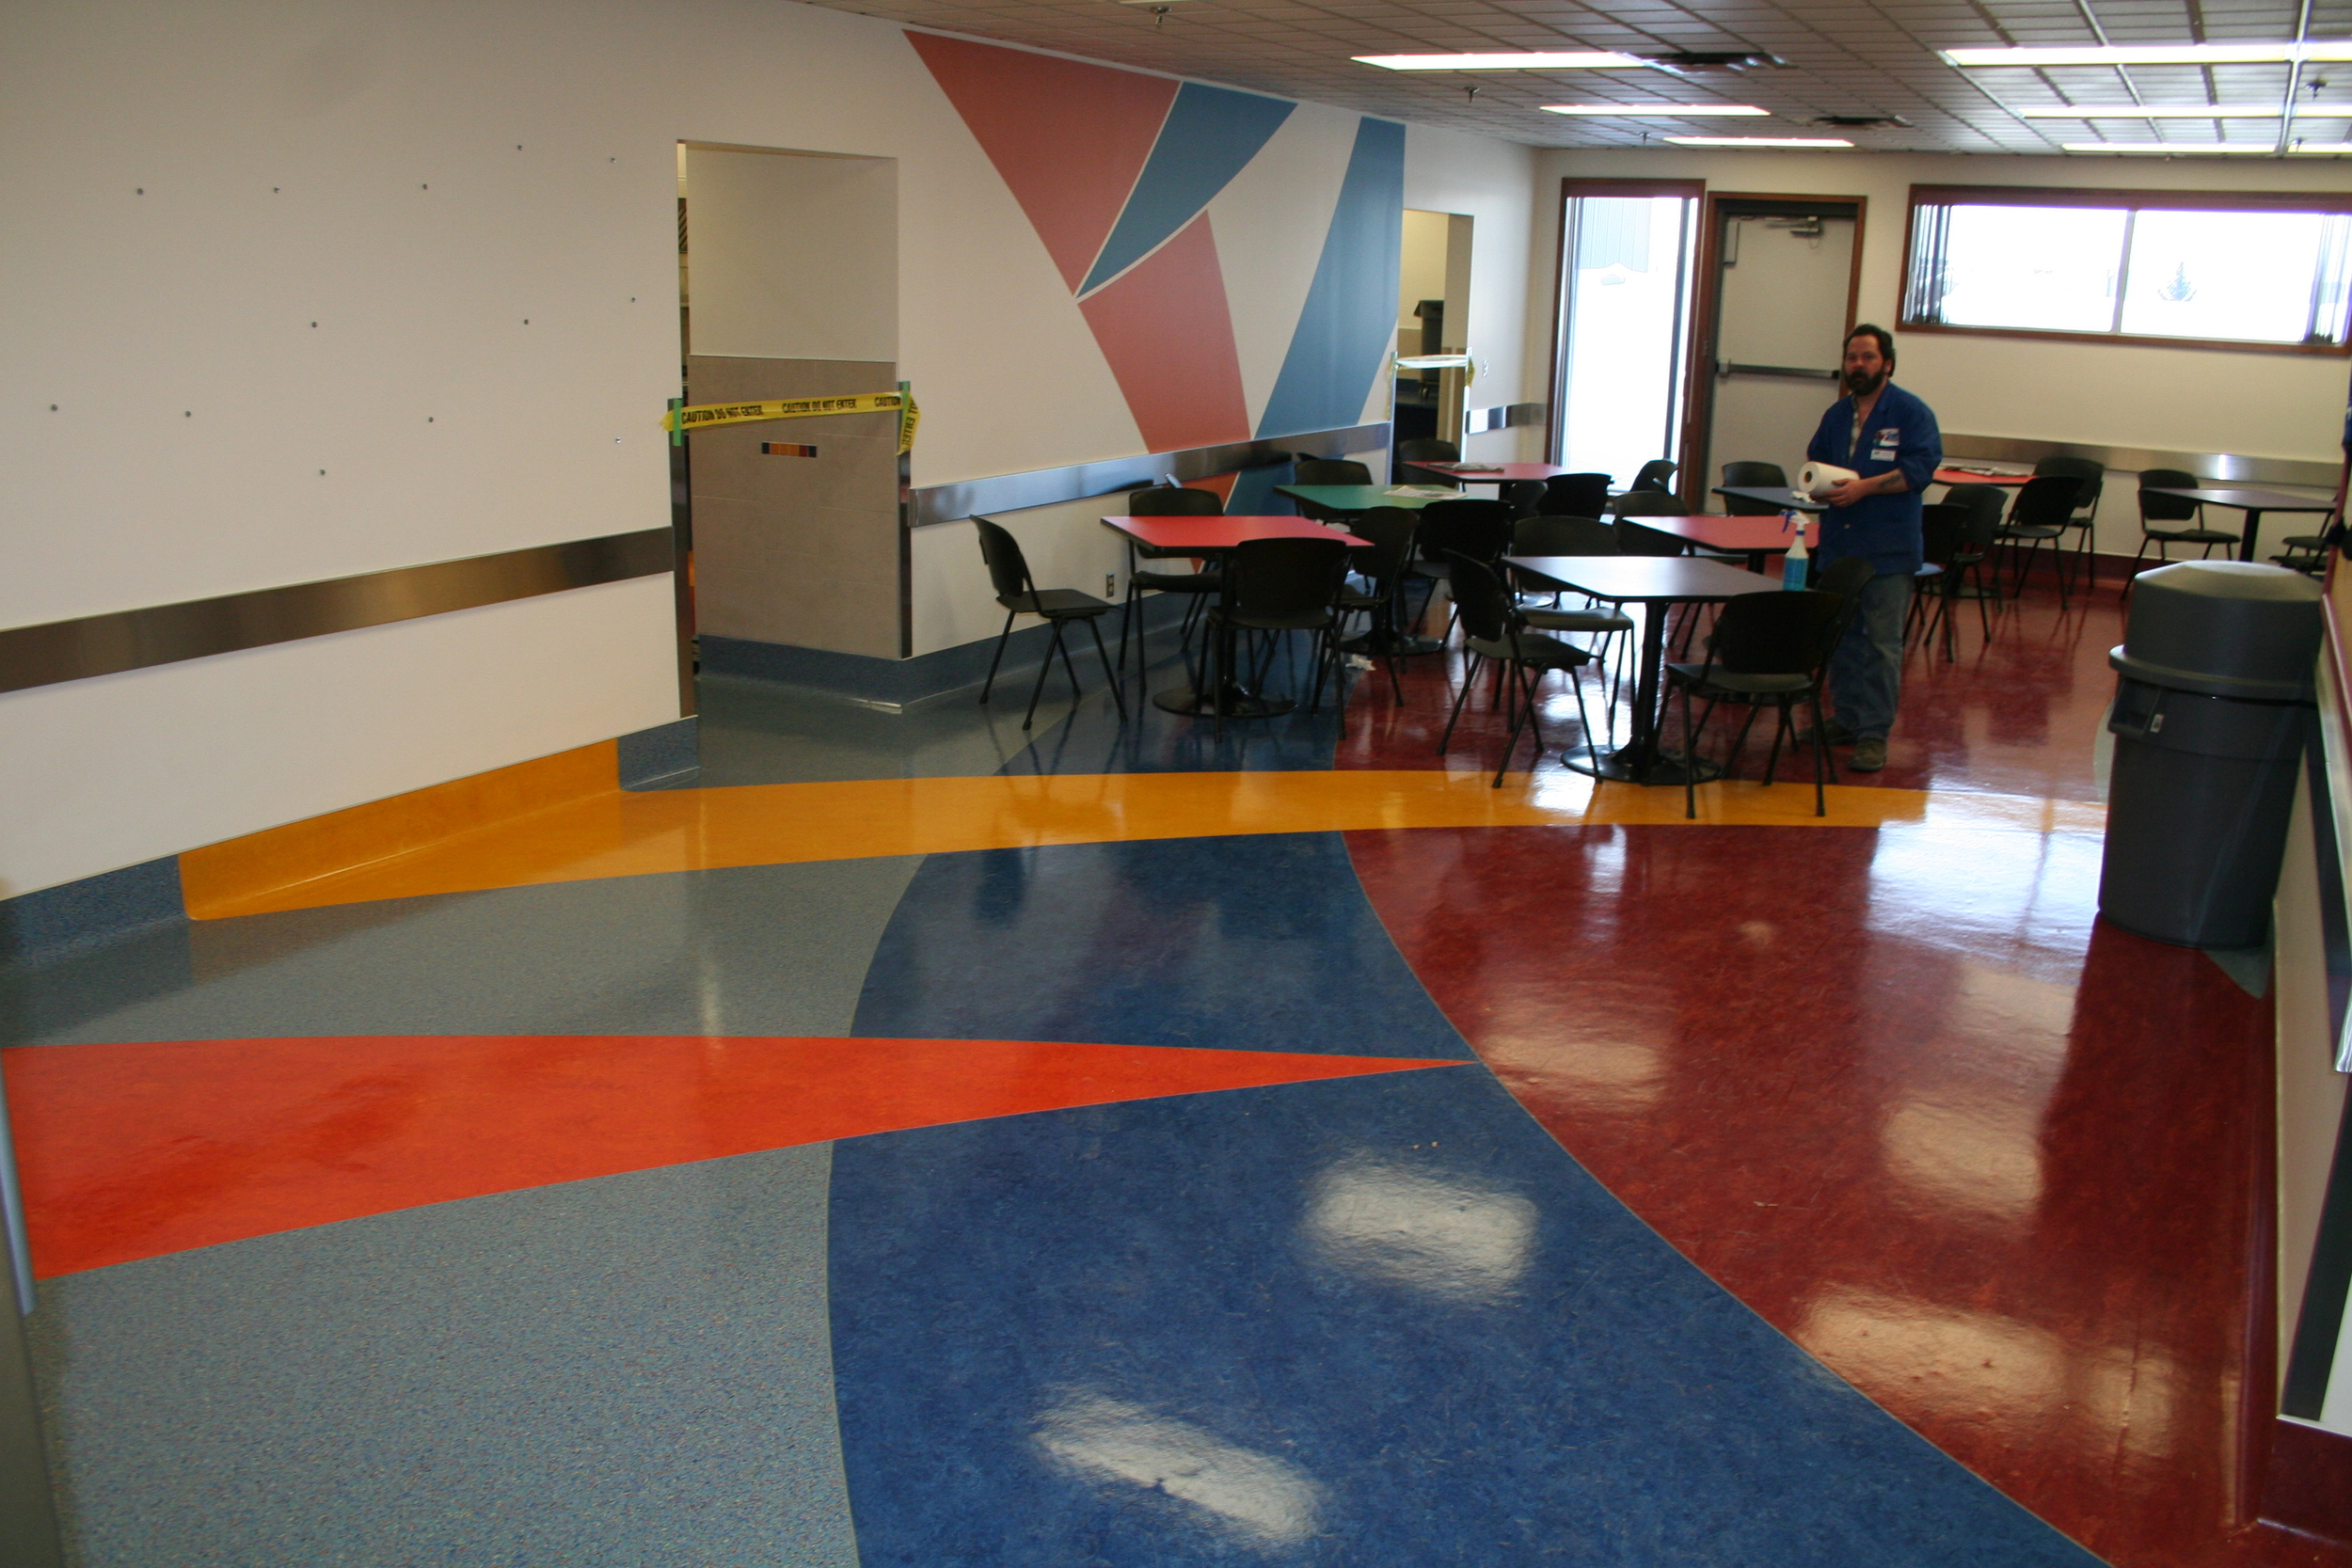 The final result with high gloss wax. Notice the colors on the floor continue onto the coving and the paint above